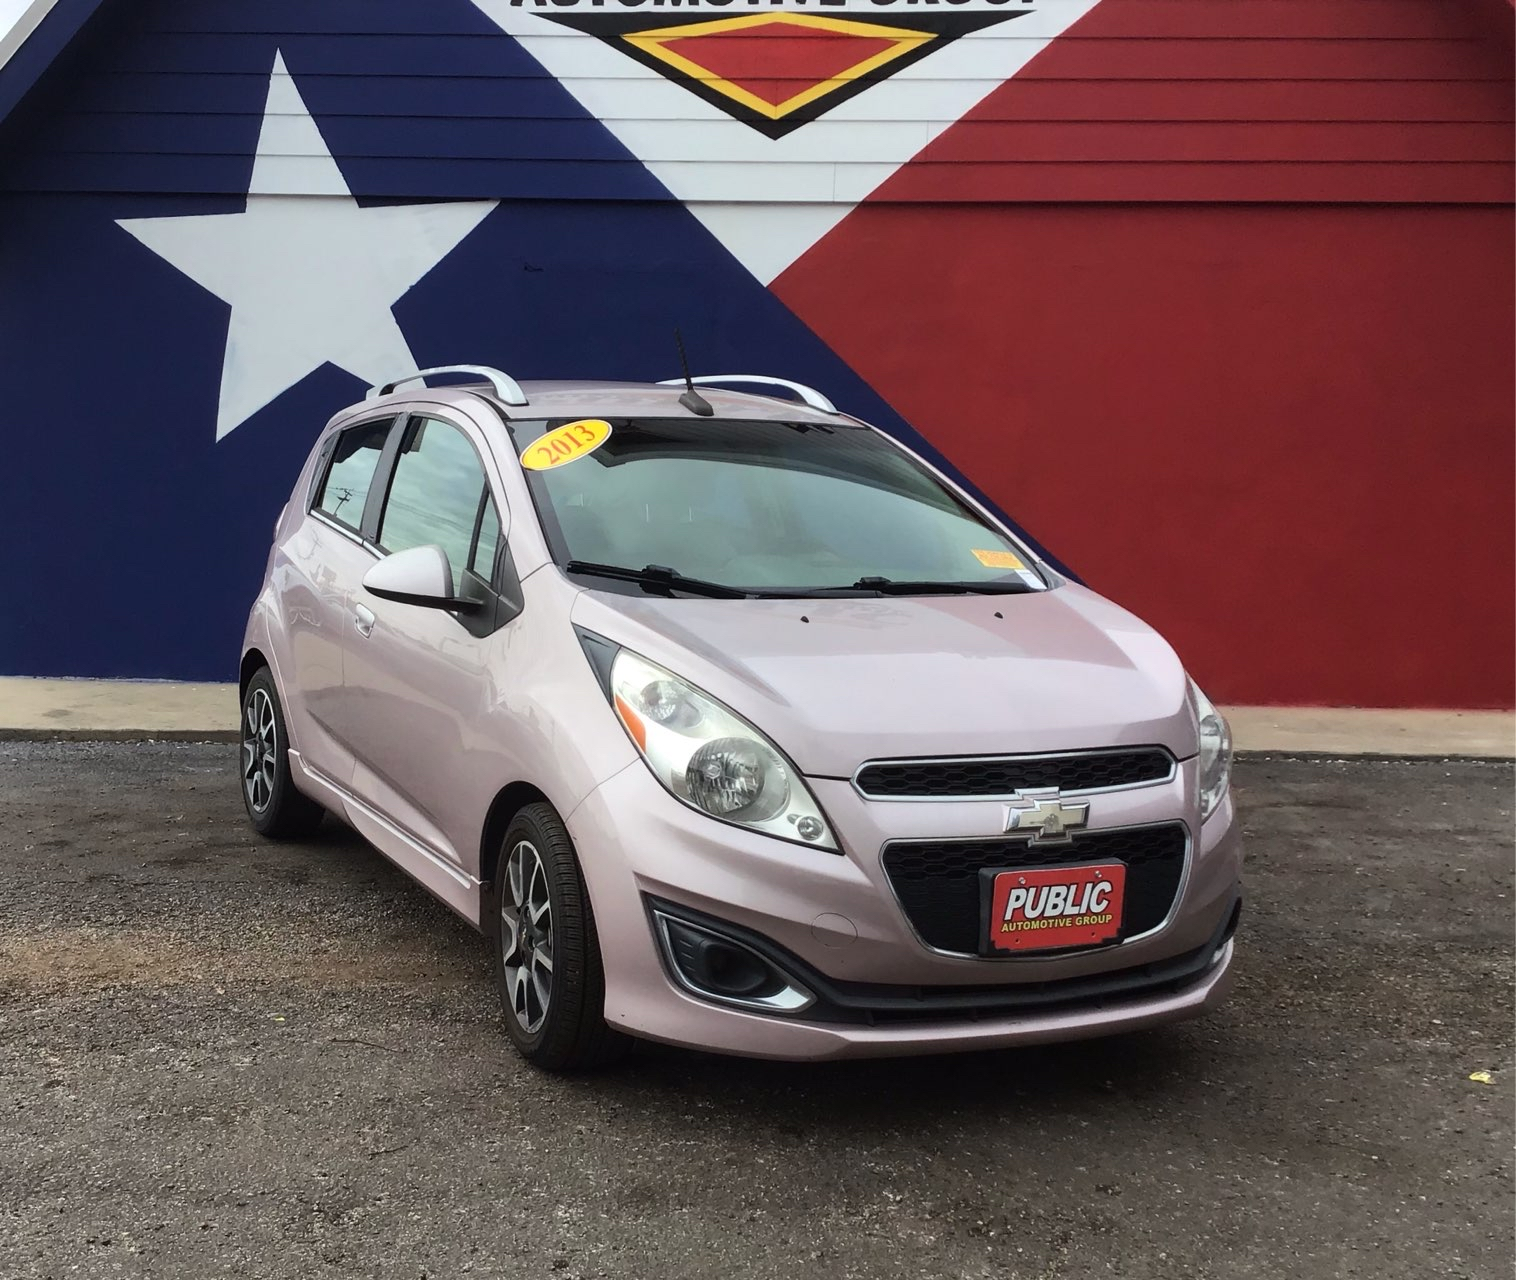 used vehicle - Automatic CHEVROLET SPARK 2013